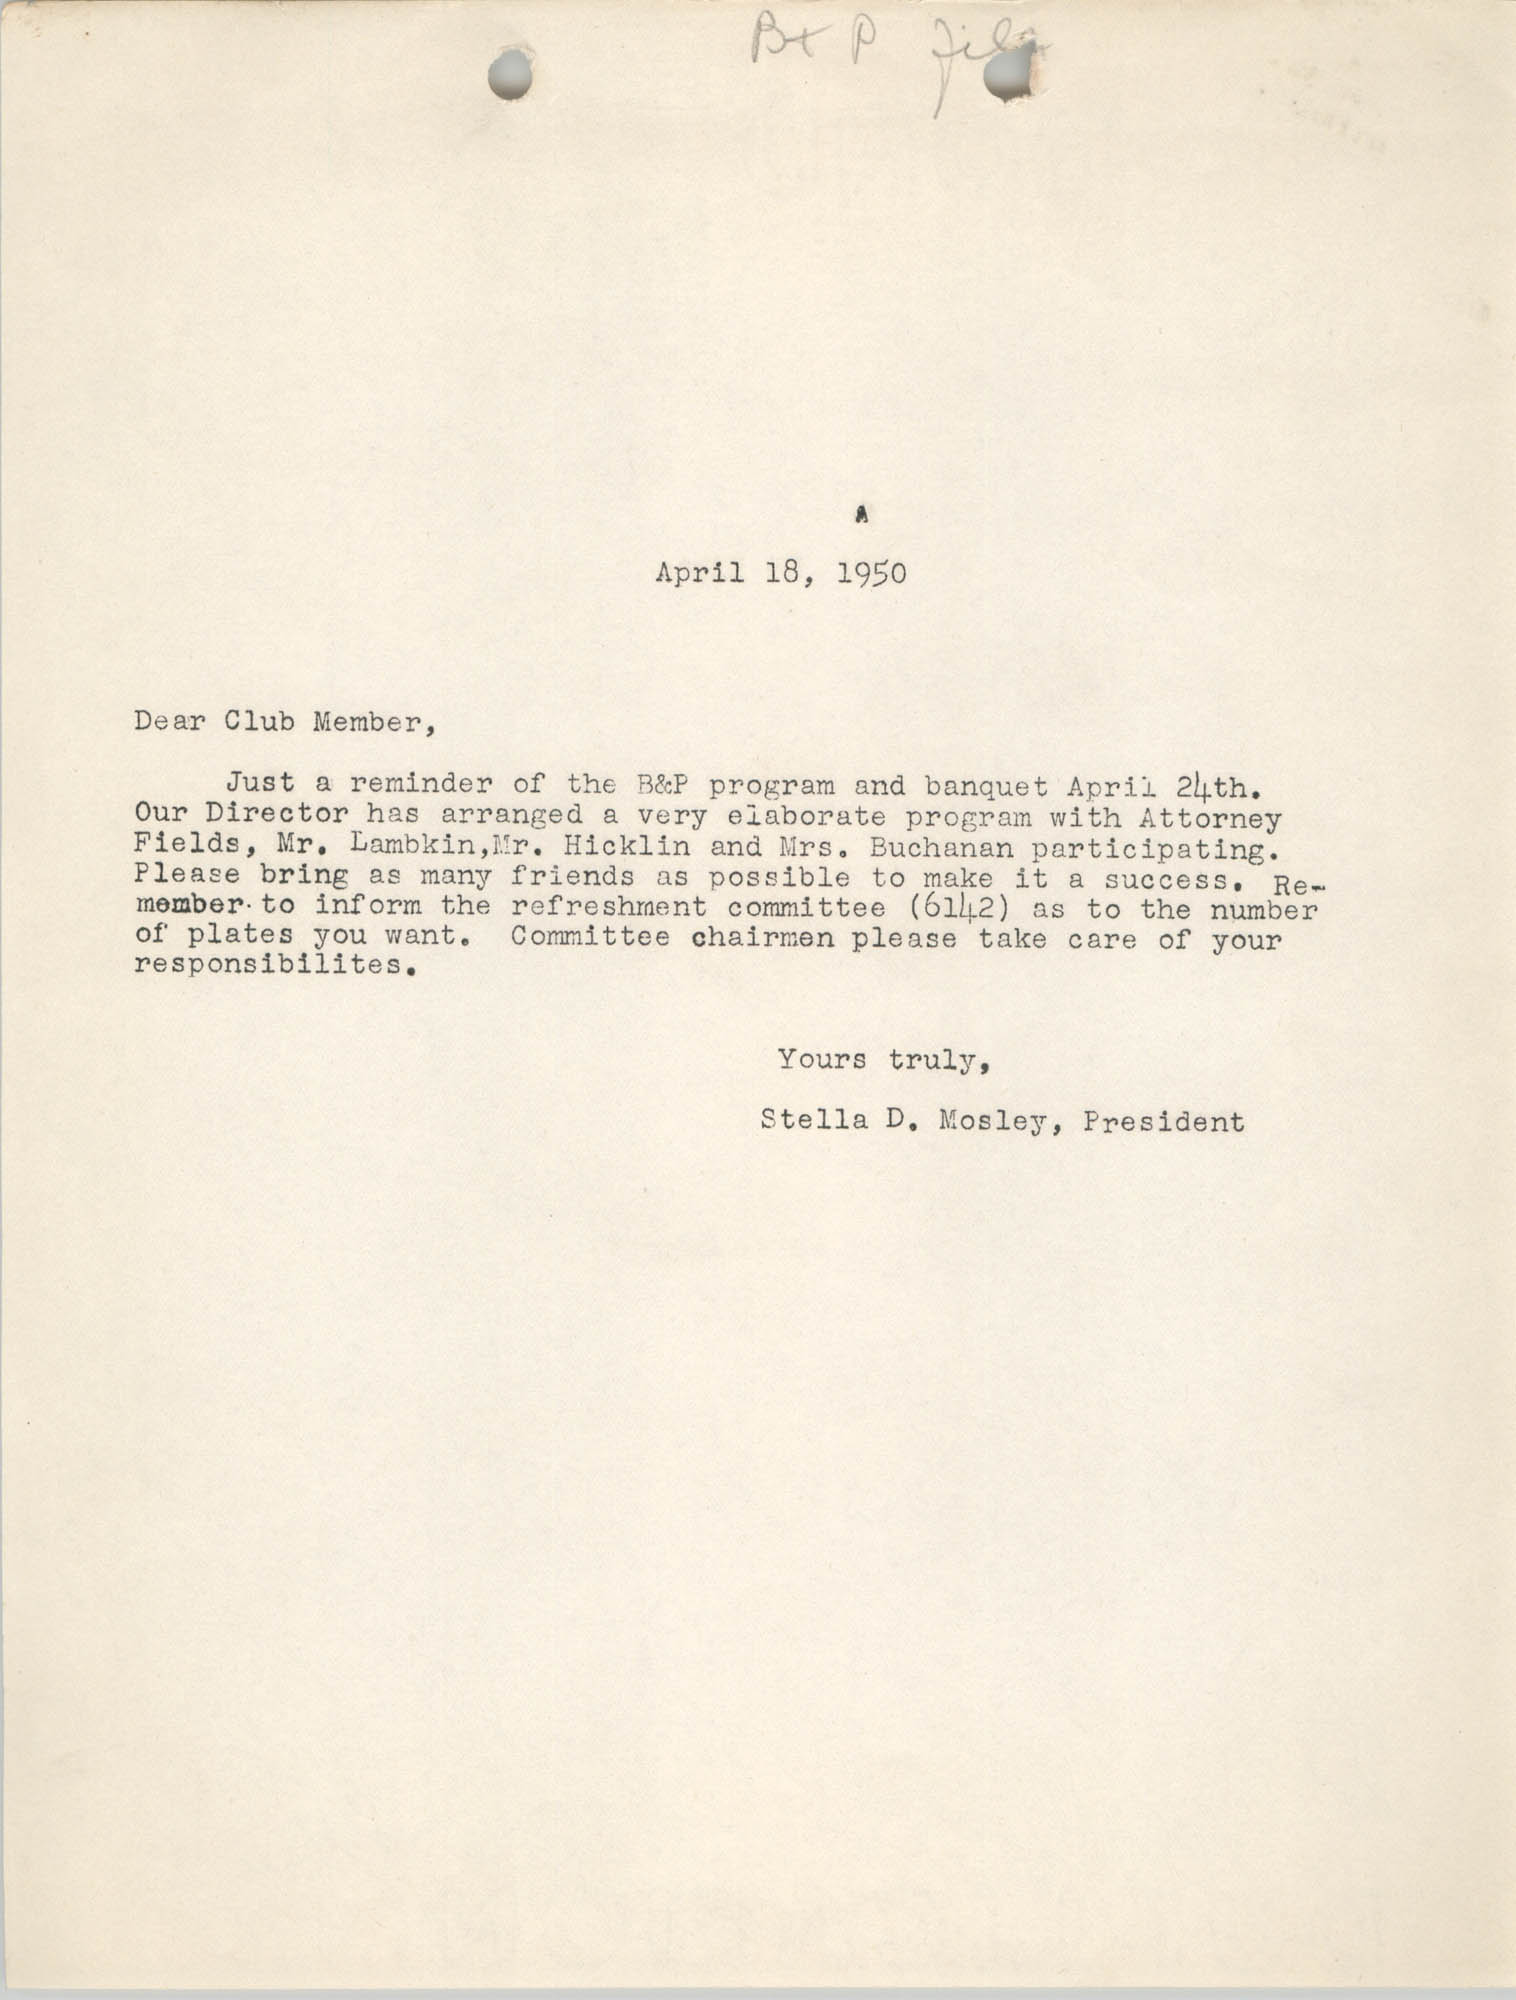 Letter from Stella D. Mosley, April 18, 1950